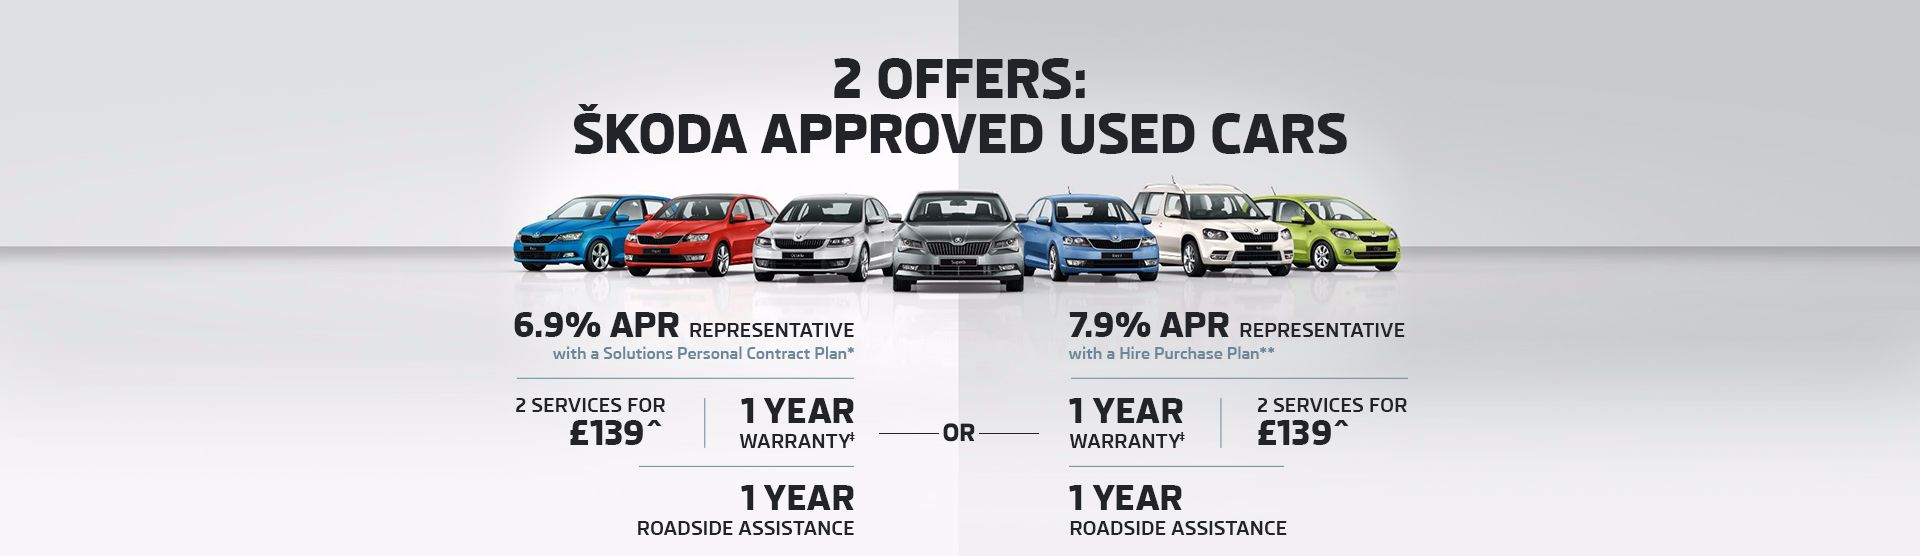 Approved Used ŠKODA Offers